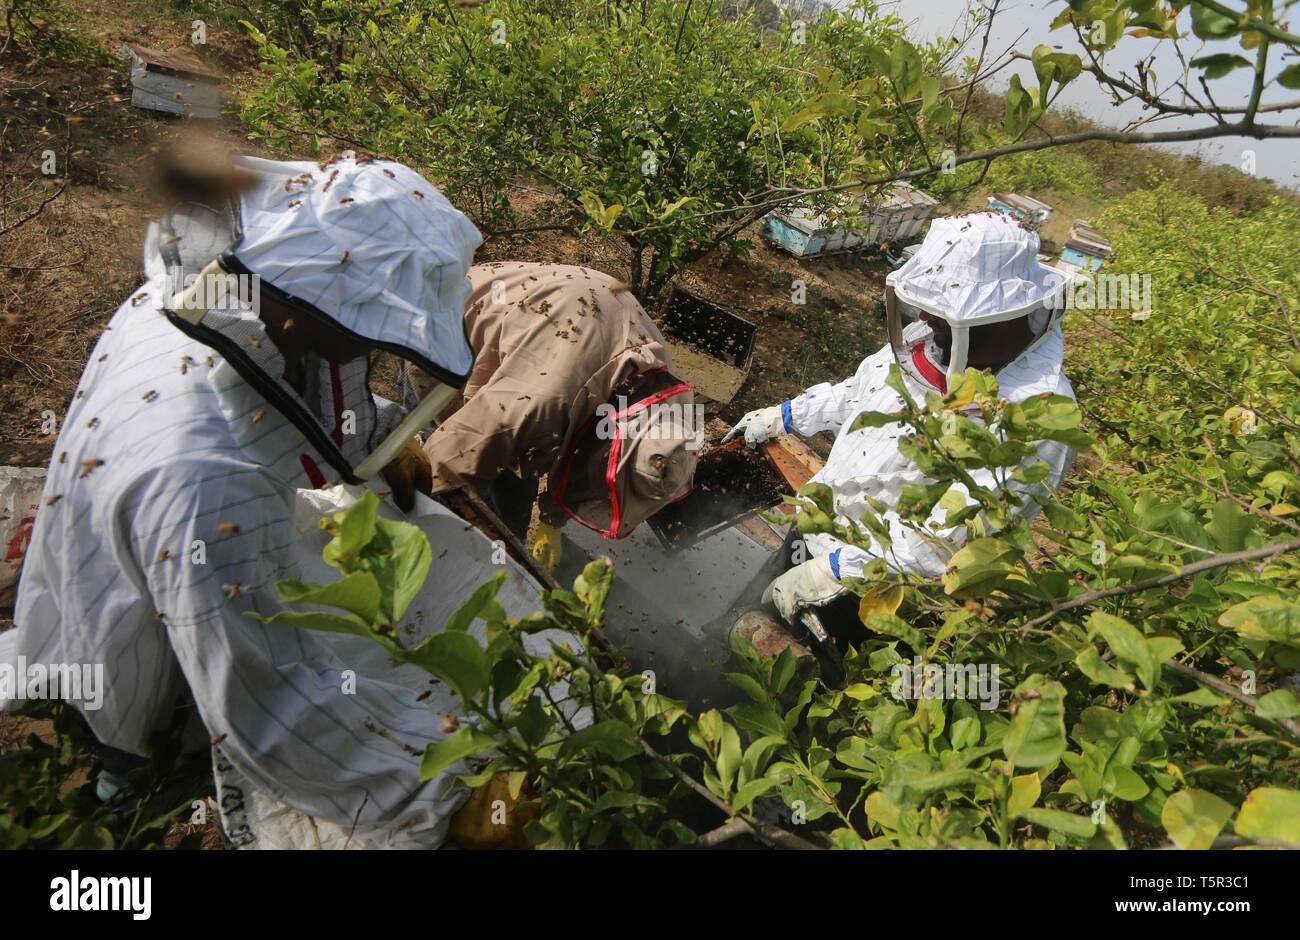 Central Of The Gaza Strip, The Gaza Strip, Palestine. 27th Apr, 2019. Palestinian beekeepers surrounded by bees as they collects honey at a farm in central of the Gaza Strip Credit: Mahmoud Khattab/Quds Net News/ZUMA Wire/Alamy Live News - Stock Image